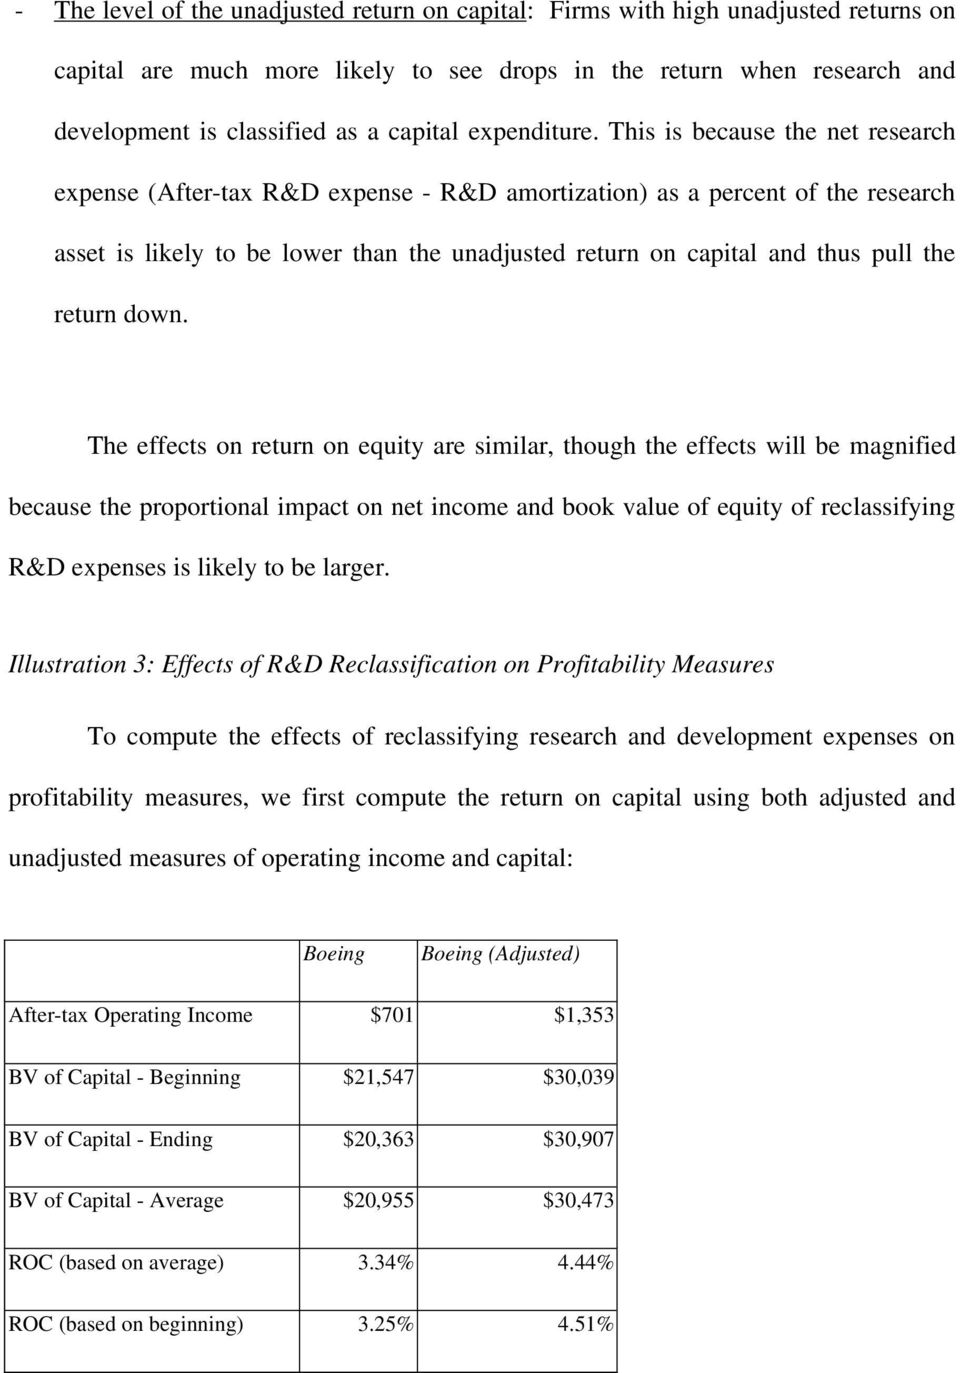 This is because the net research expense (After-tax R&D expense - R&D amortization) as a percent of the research asset is likely to be lower than the unadjusted return on capital and thus pull the